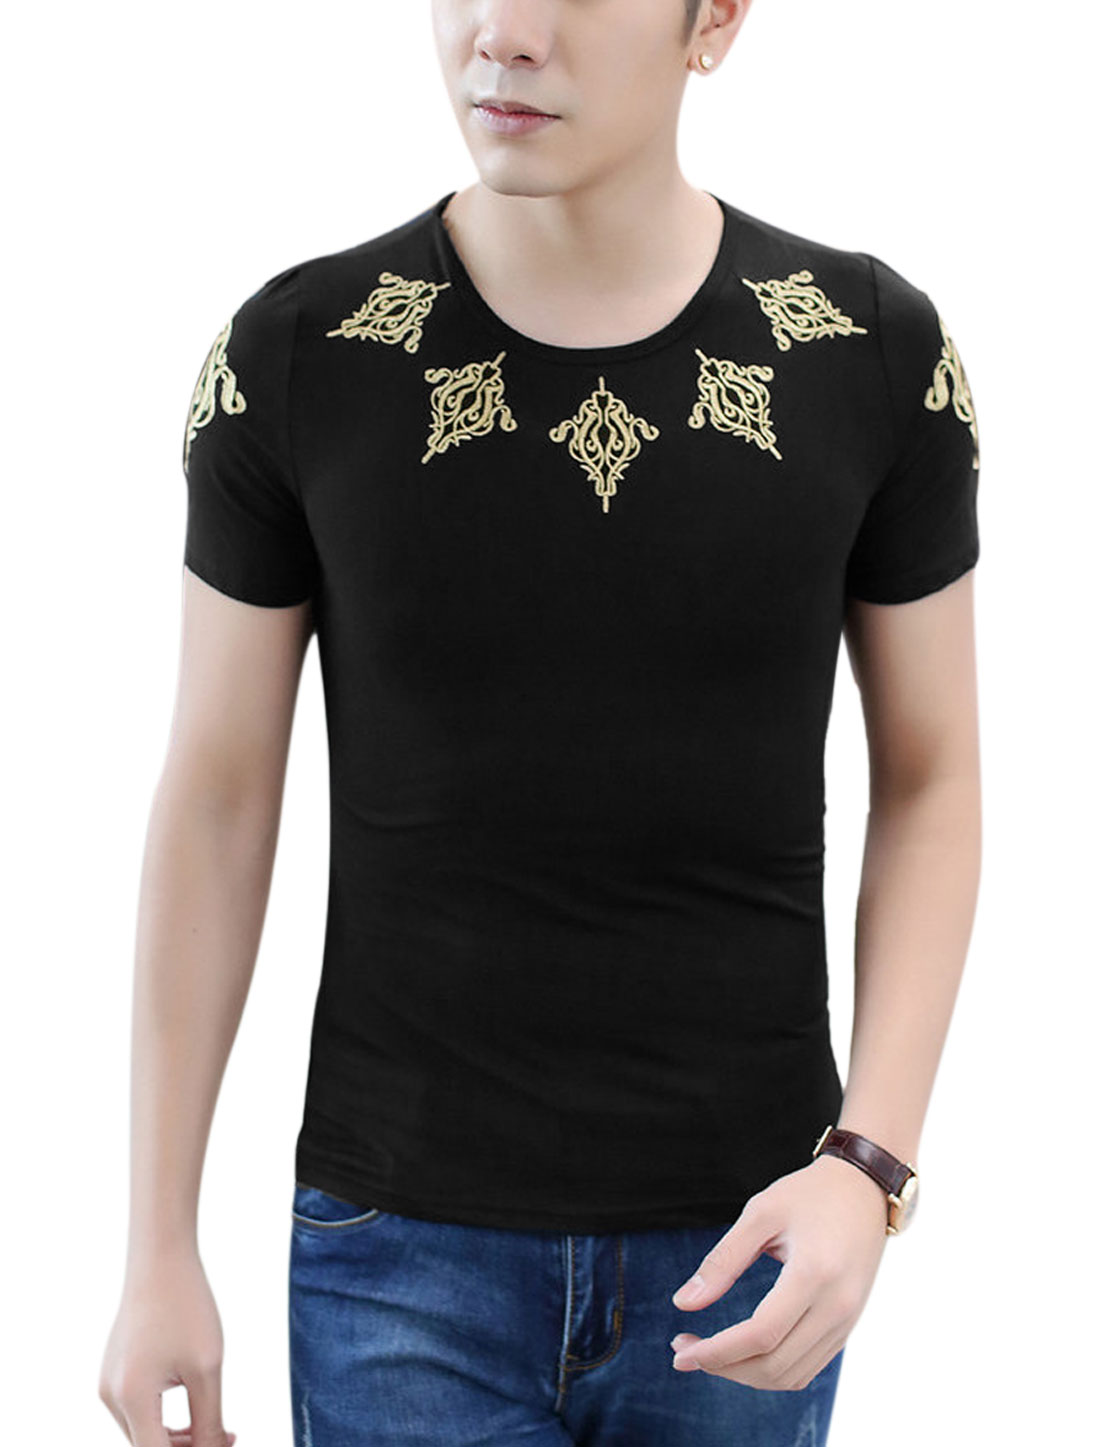 Men Short Sleeve Round Neck Embroidery Casual T Shirt Black M